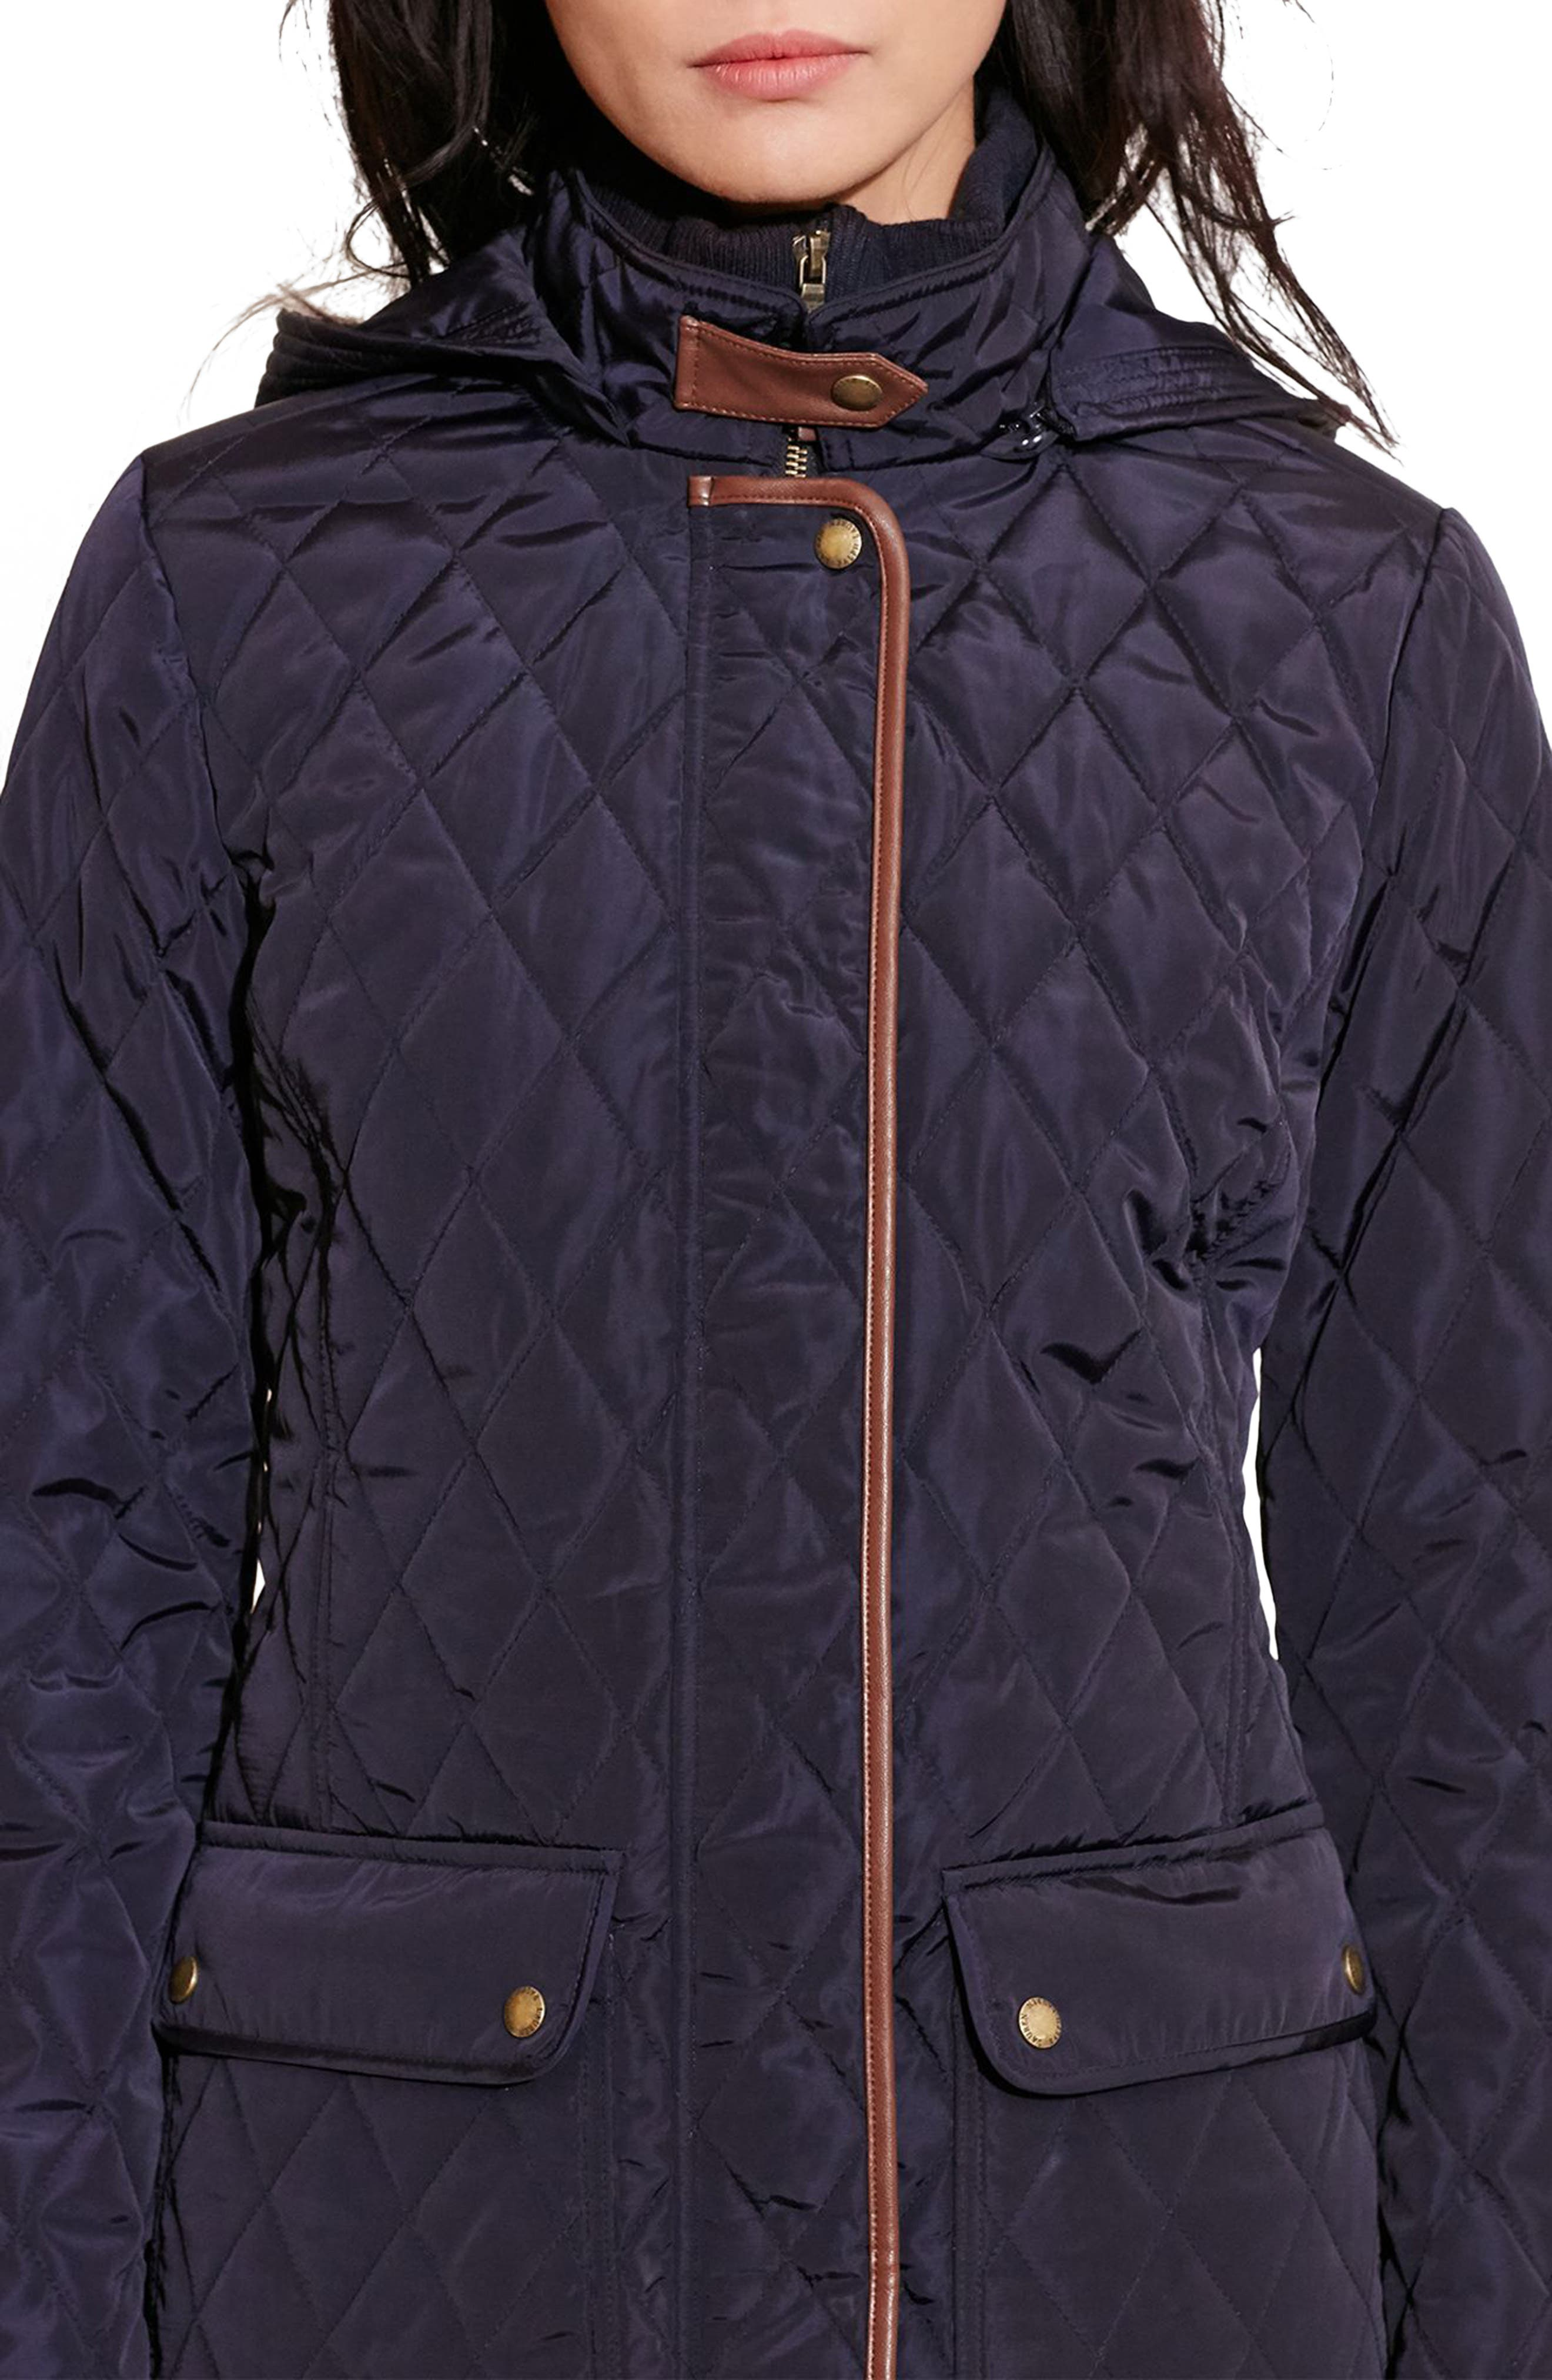 Diamond Quilted Coat with Faux Leather Trim,                             Alternate thumbnail 5, color,                             Dark Navy